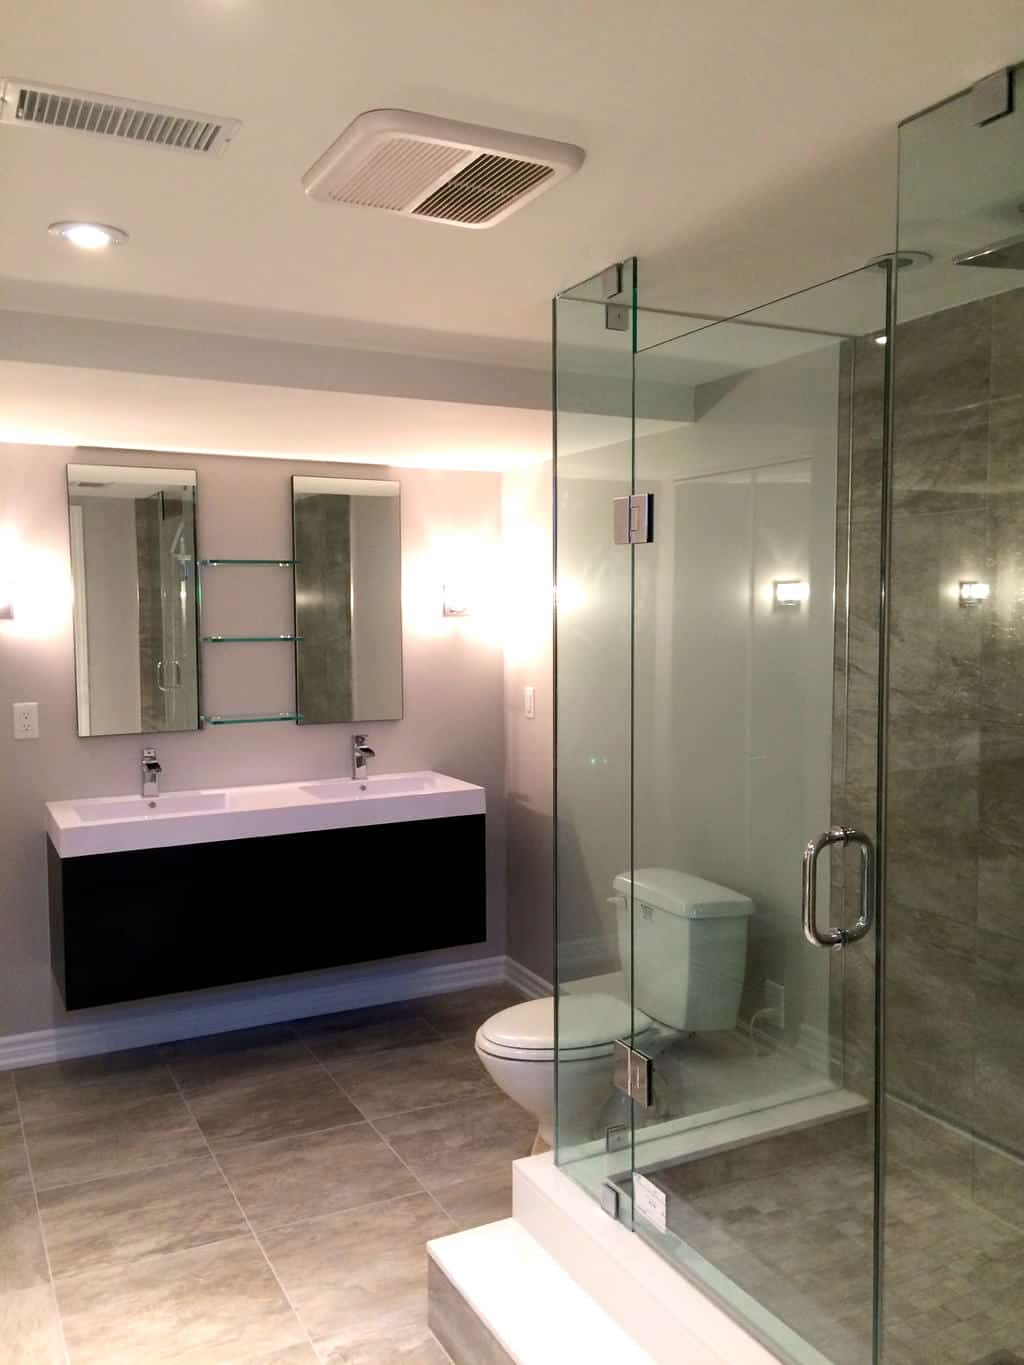 Bathroom Renovations Renovation Contractor Oakville Serving Mississauga Oakville Burlington